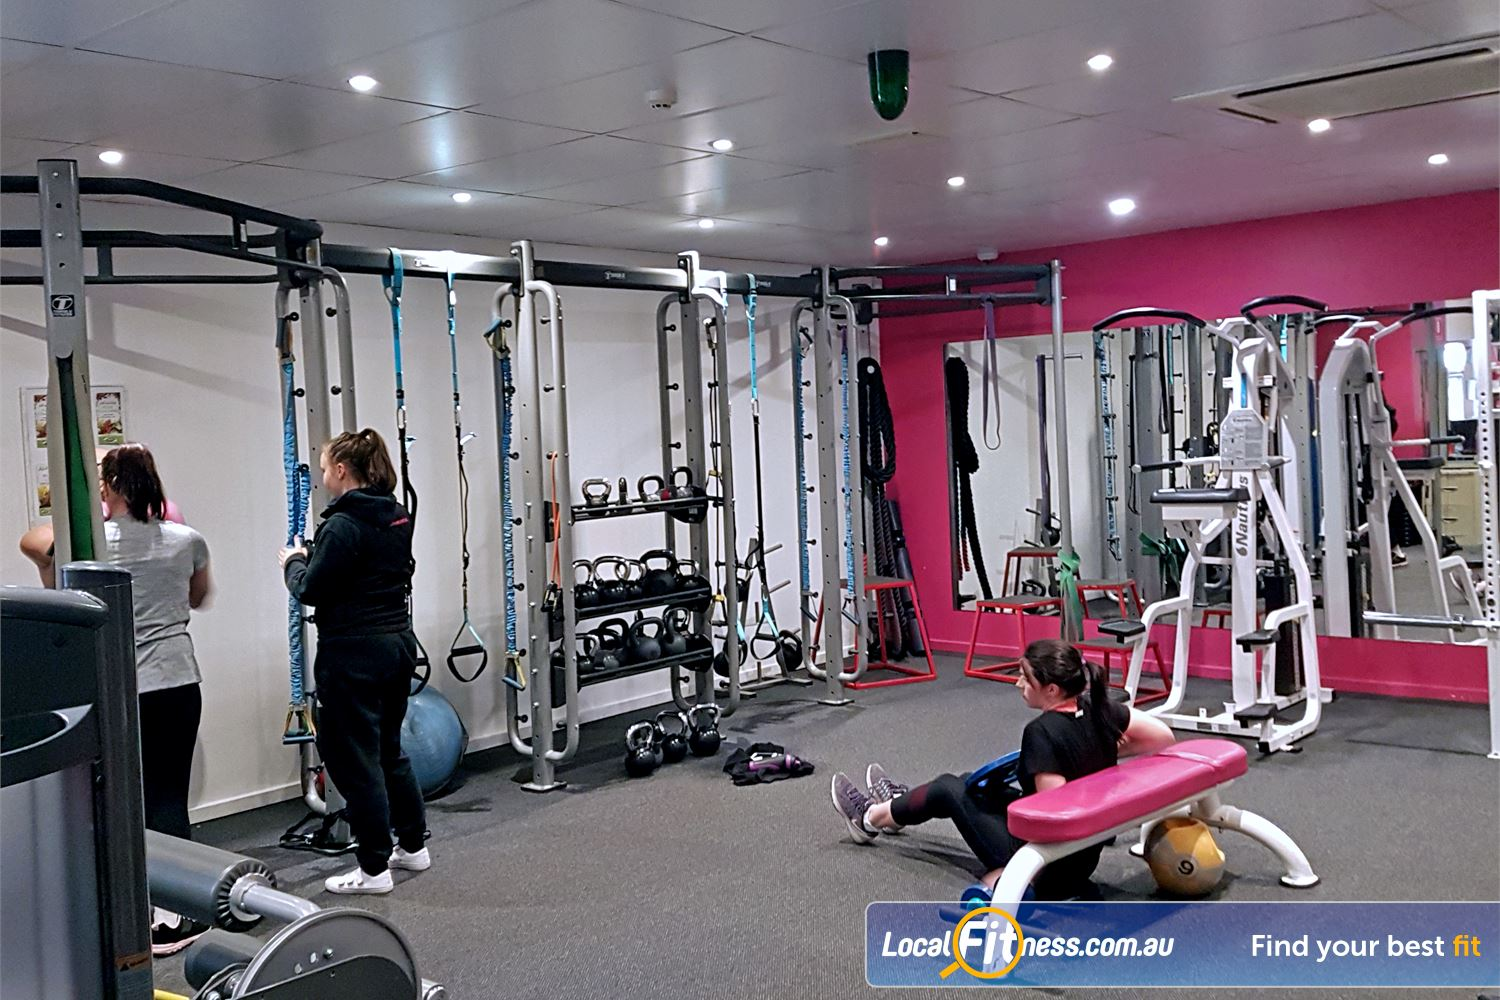 Fernwood Fitness St Agnes Enjoy 24 hour access to our Fernwood St Agnes gym.